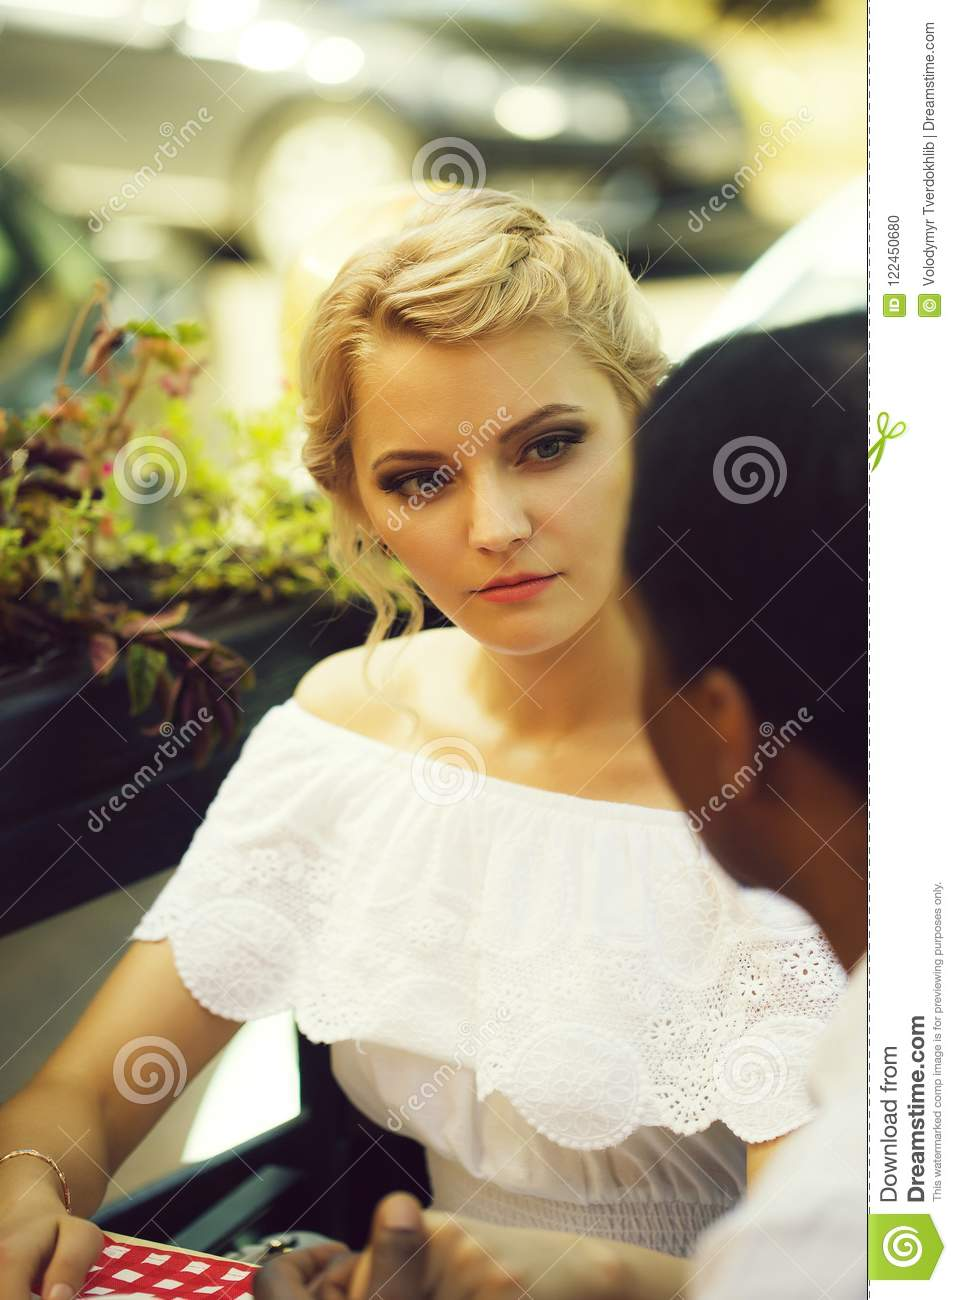 Pretty Girl Looks At Man Stock Photo Image Of Woman 122450680